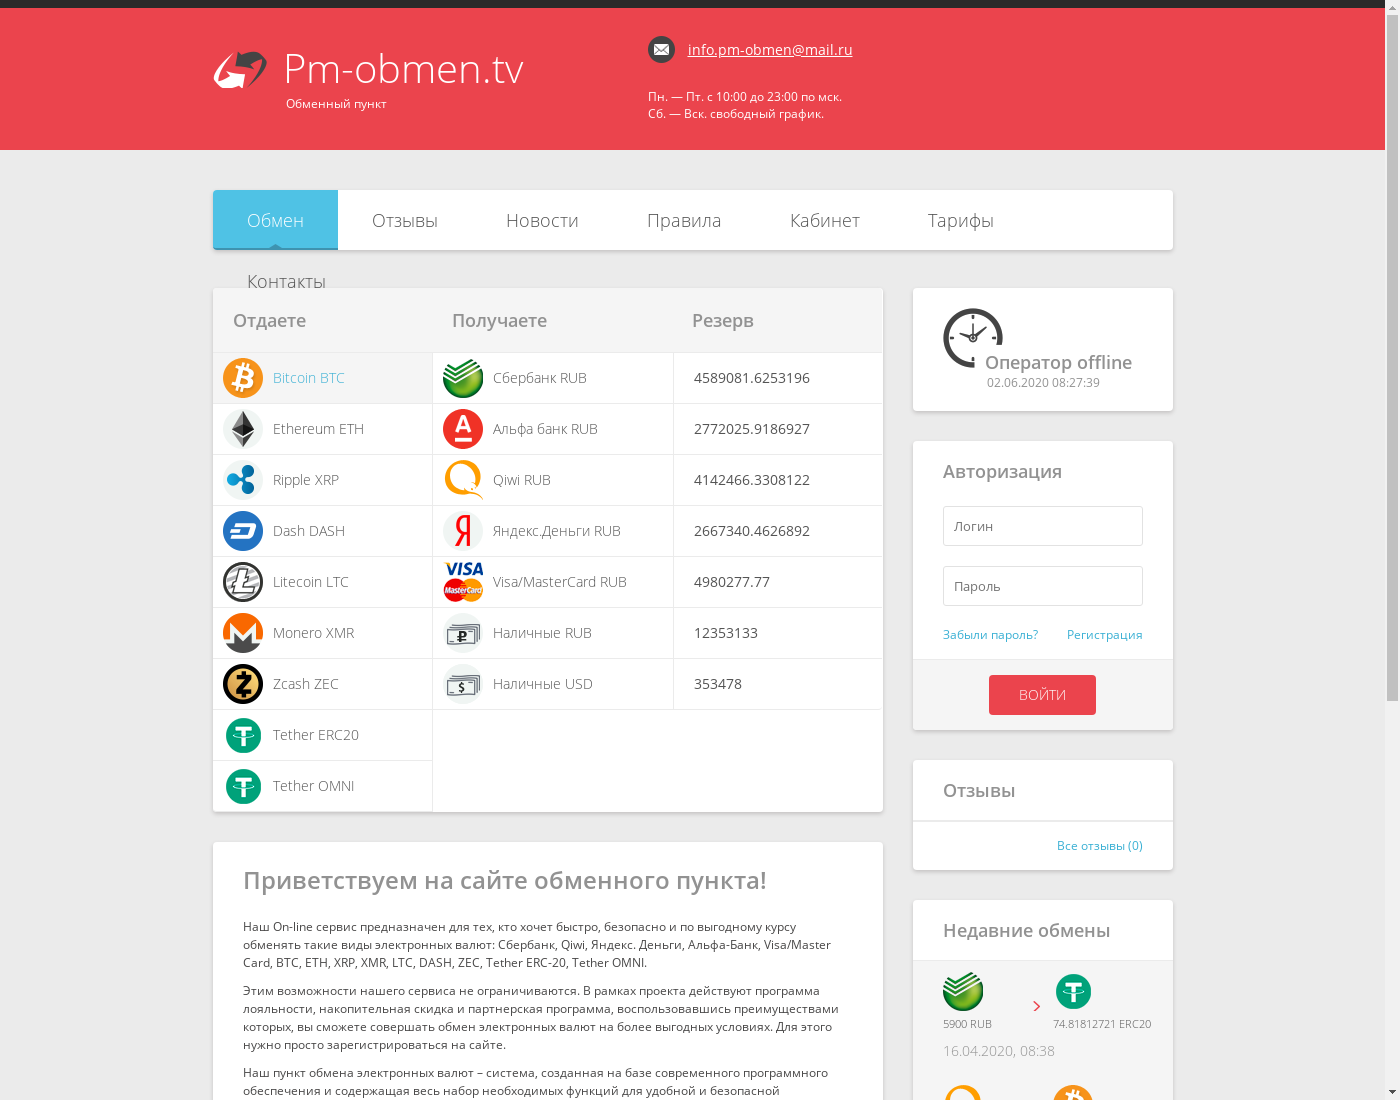 pm-obmen user interface: the home page in English